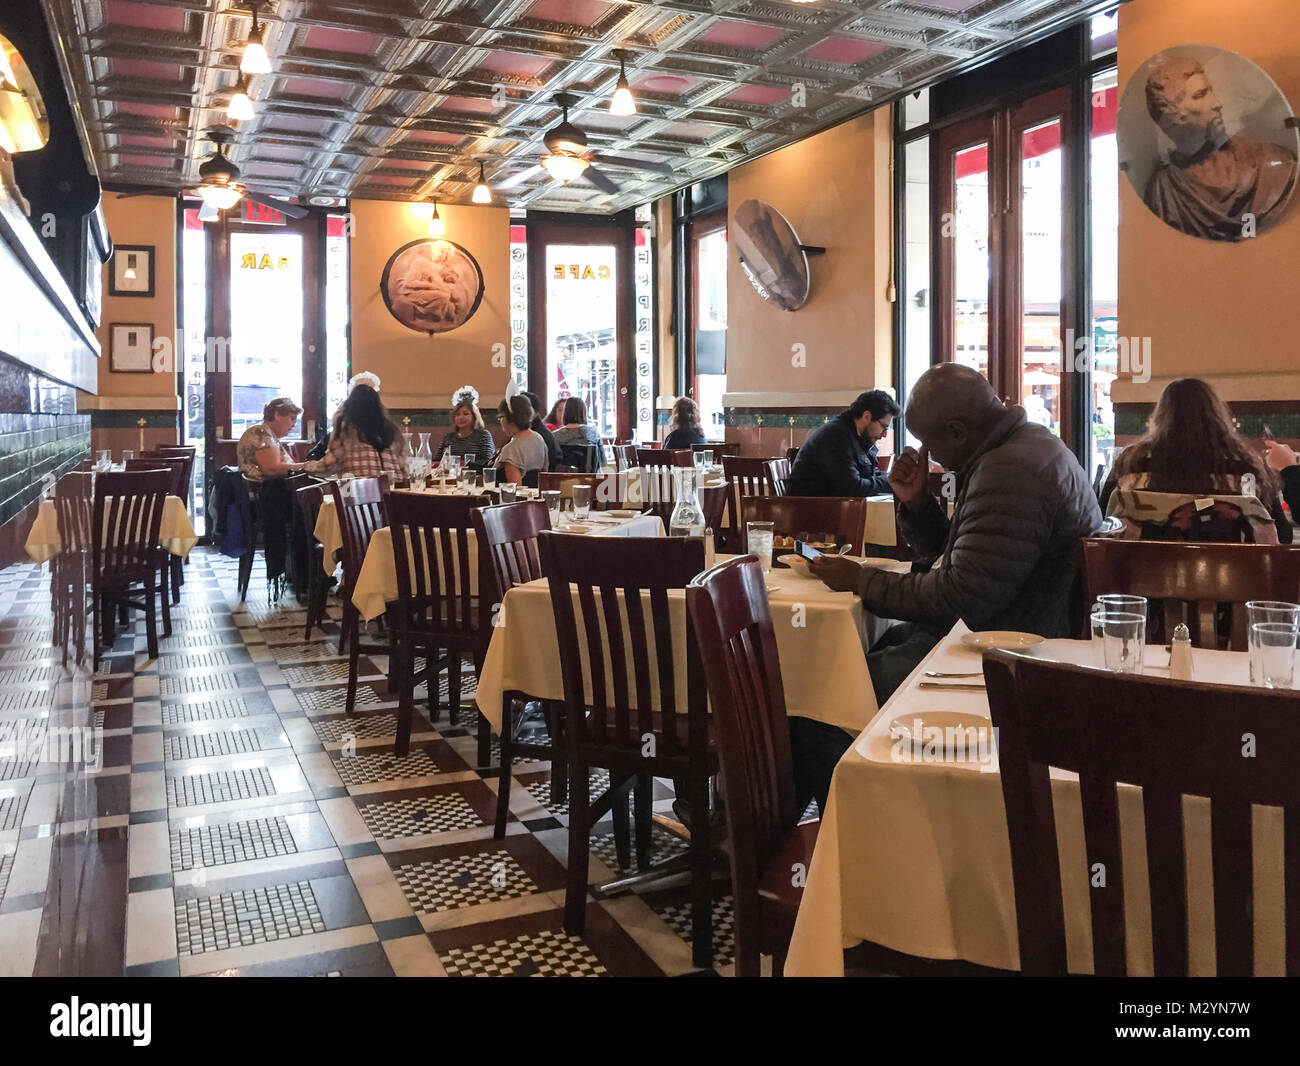 Intérieur de la grotte Azzurra dans le quartier de Little Italy, Manhattan, New York. Les gens en ville au Photo Stock